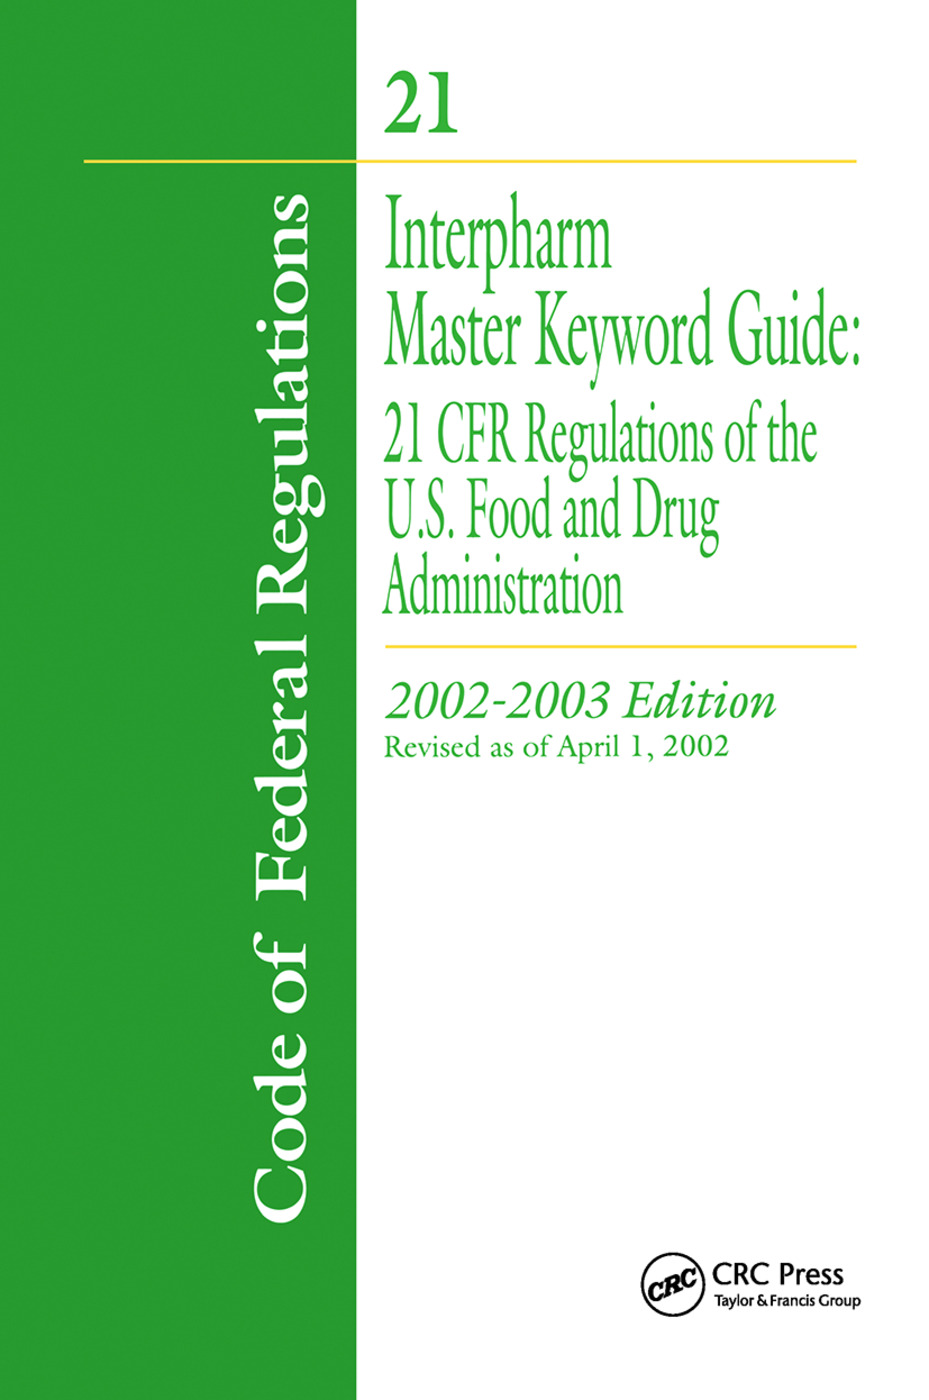 Interpharm Master Keyword Guide: 21 CFR Regulations of the Food and Drug Administration, 2002-2003 Edition, 1st Edition (Paperback) book cover